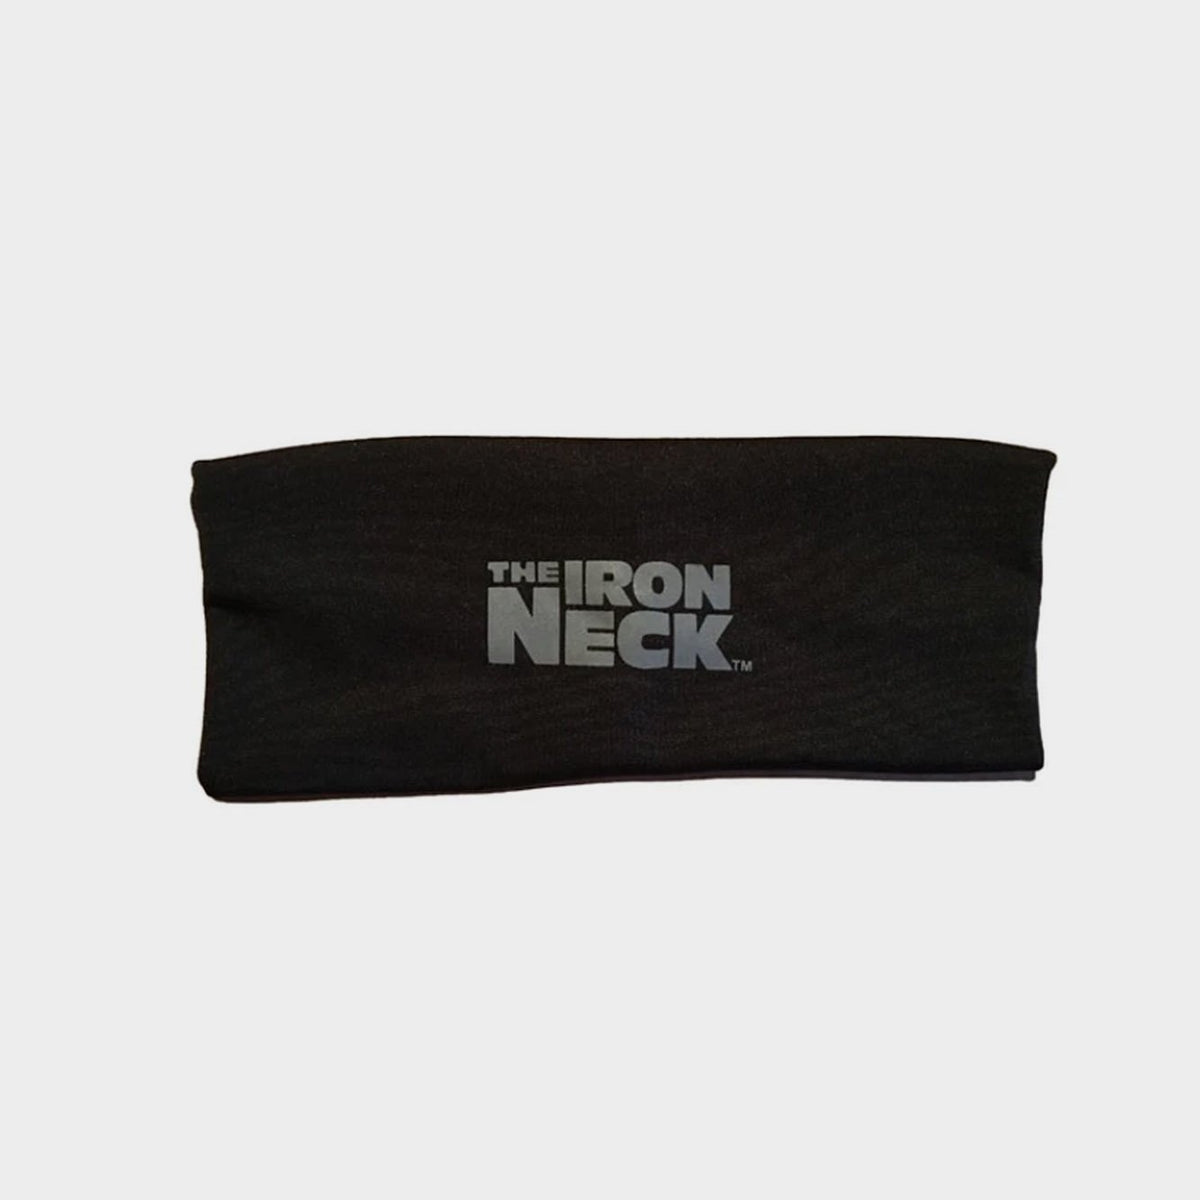 Retro Iron Neck Headband